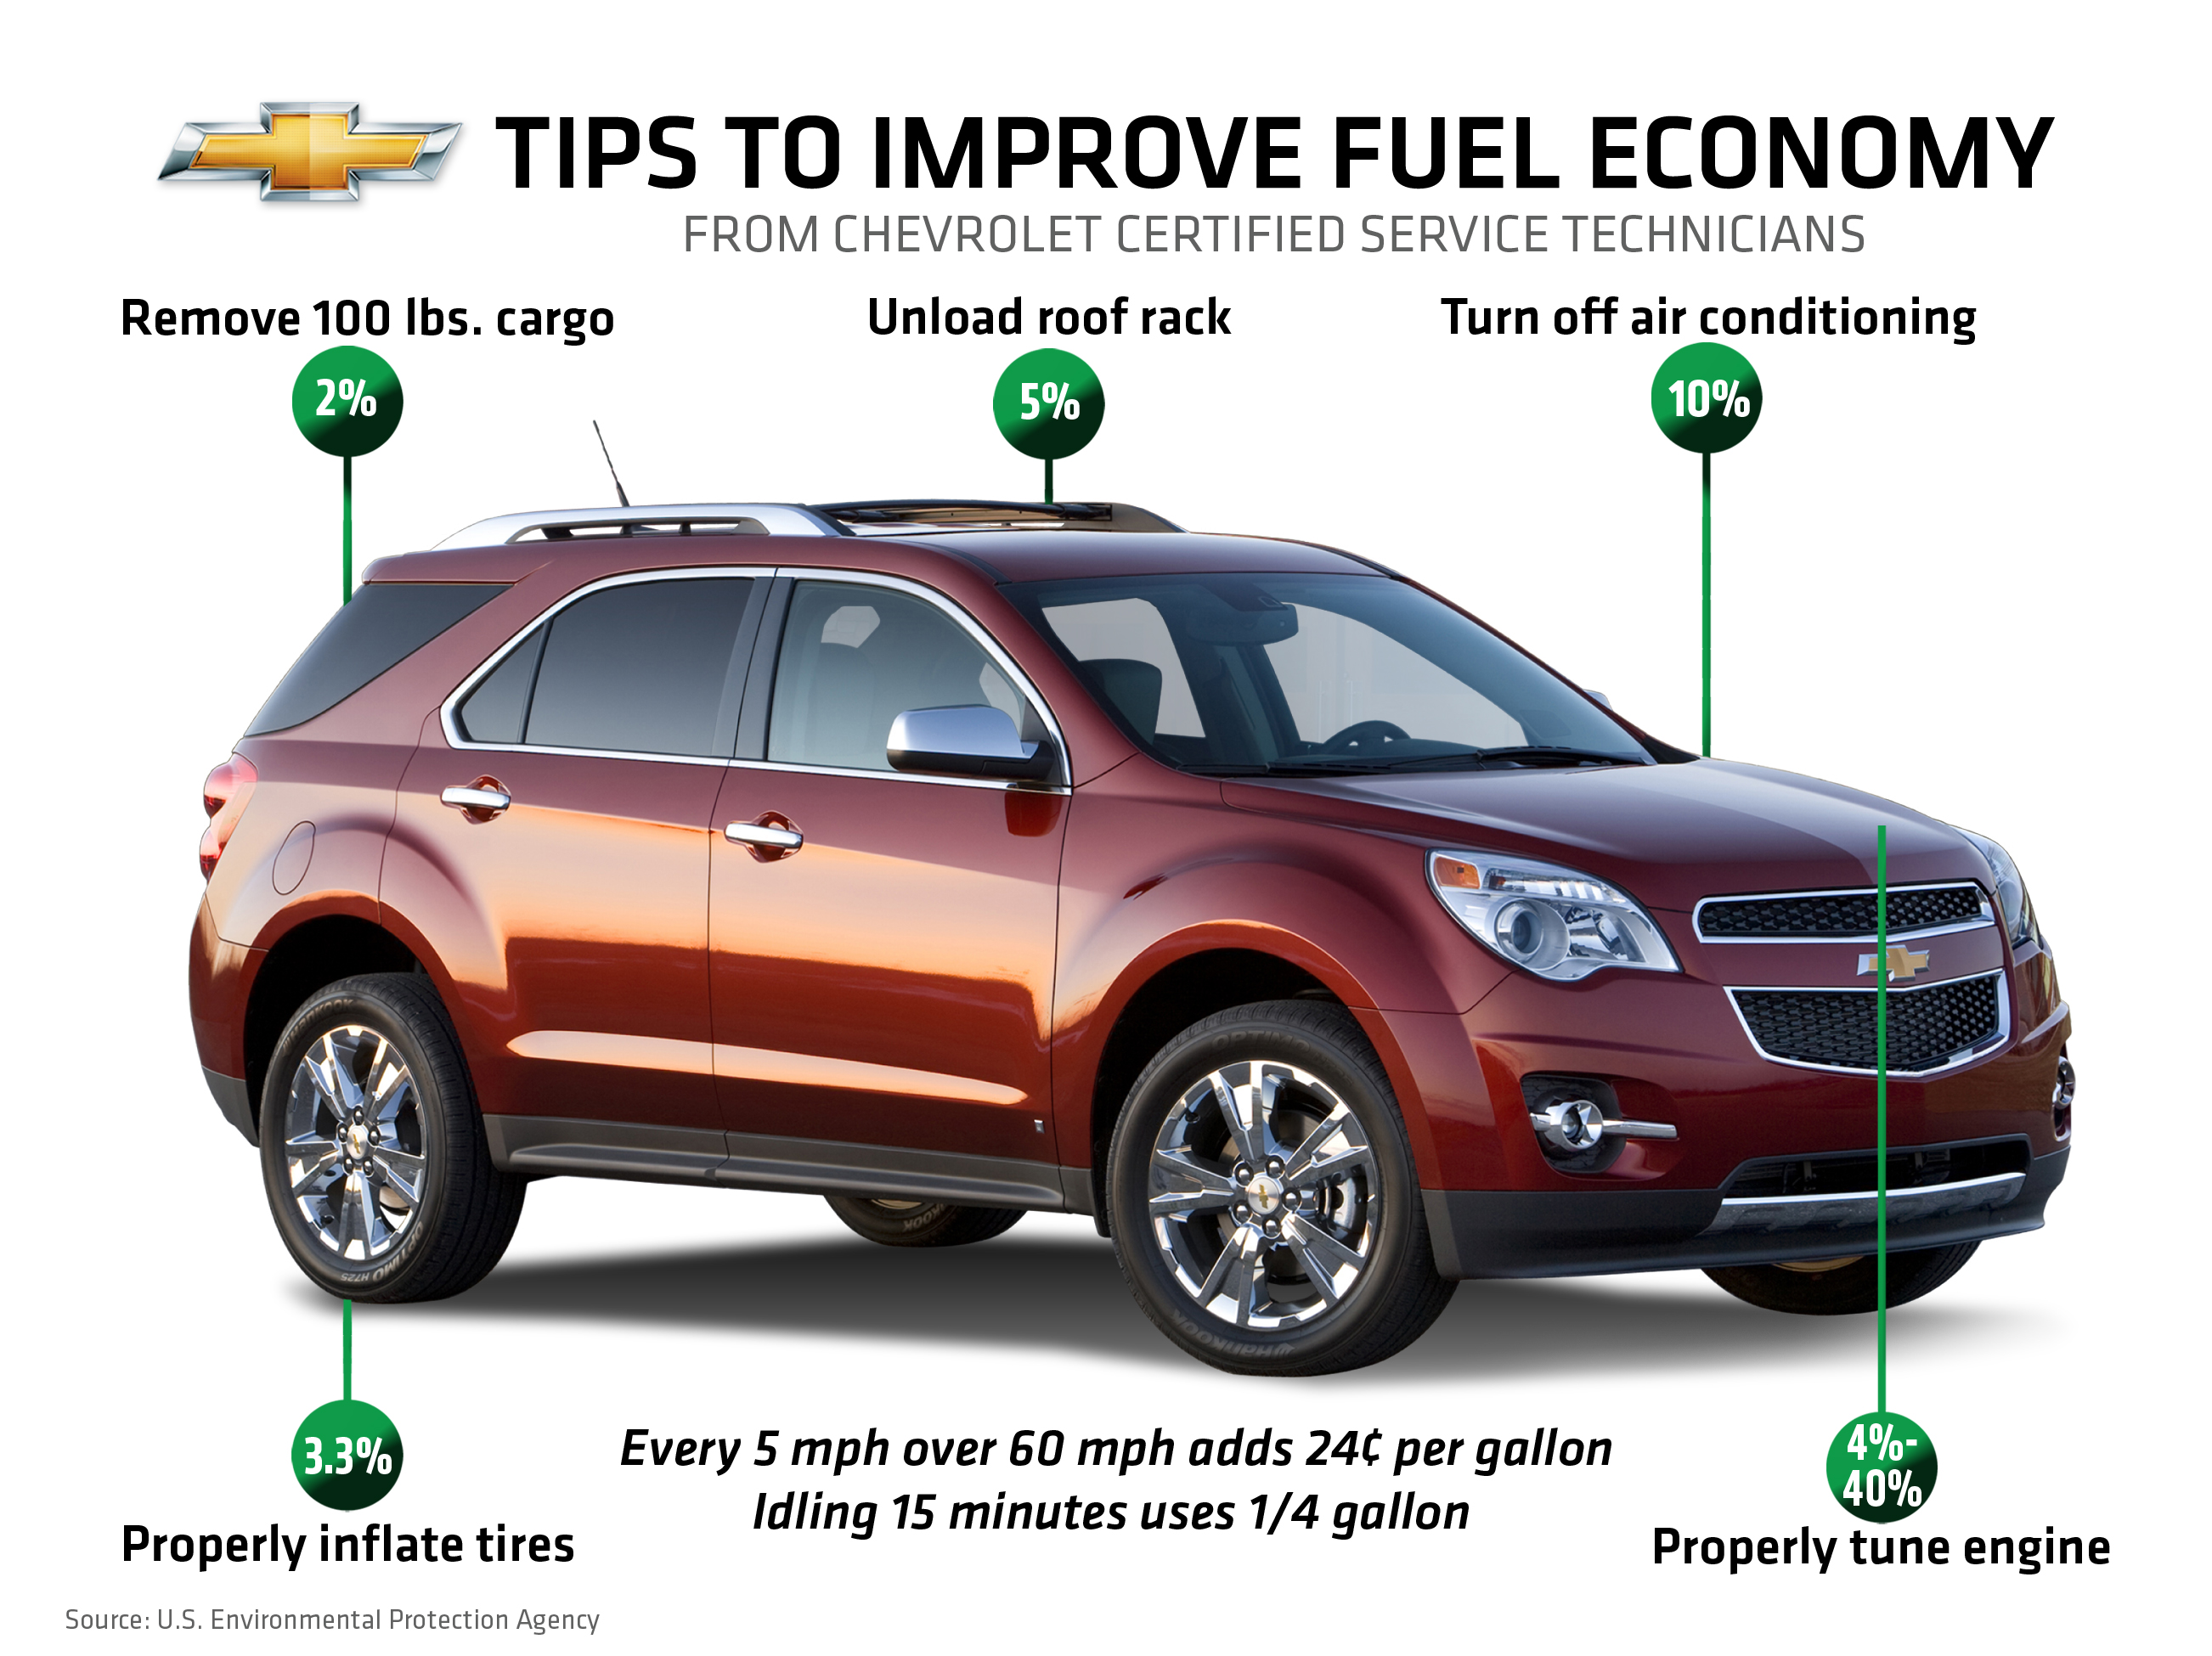 13 better fuel economy tips from bob maguire chevrolet the maguire auto blog. Black Bedroom Furniture Sets. Home Design Ideas